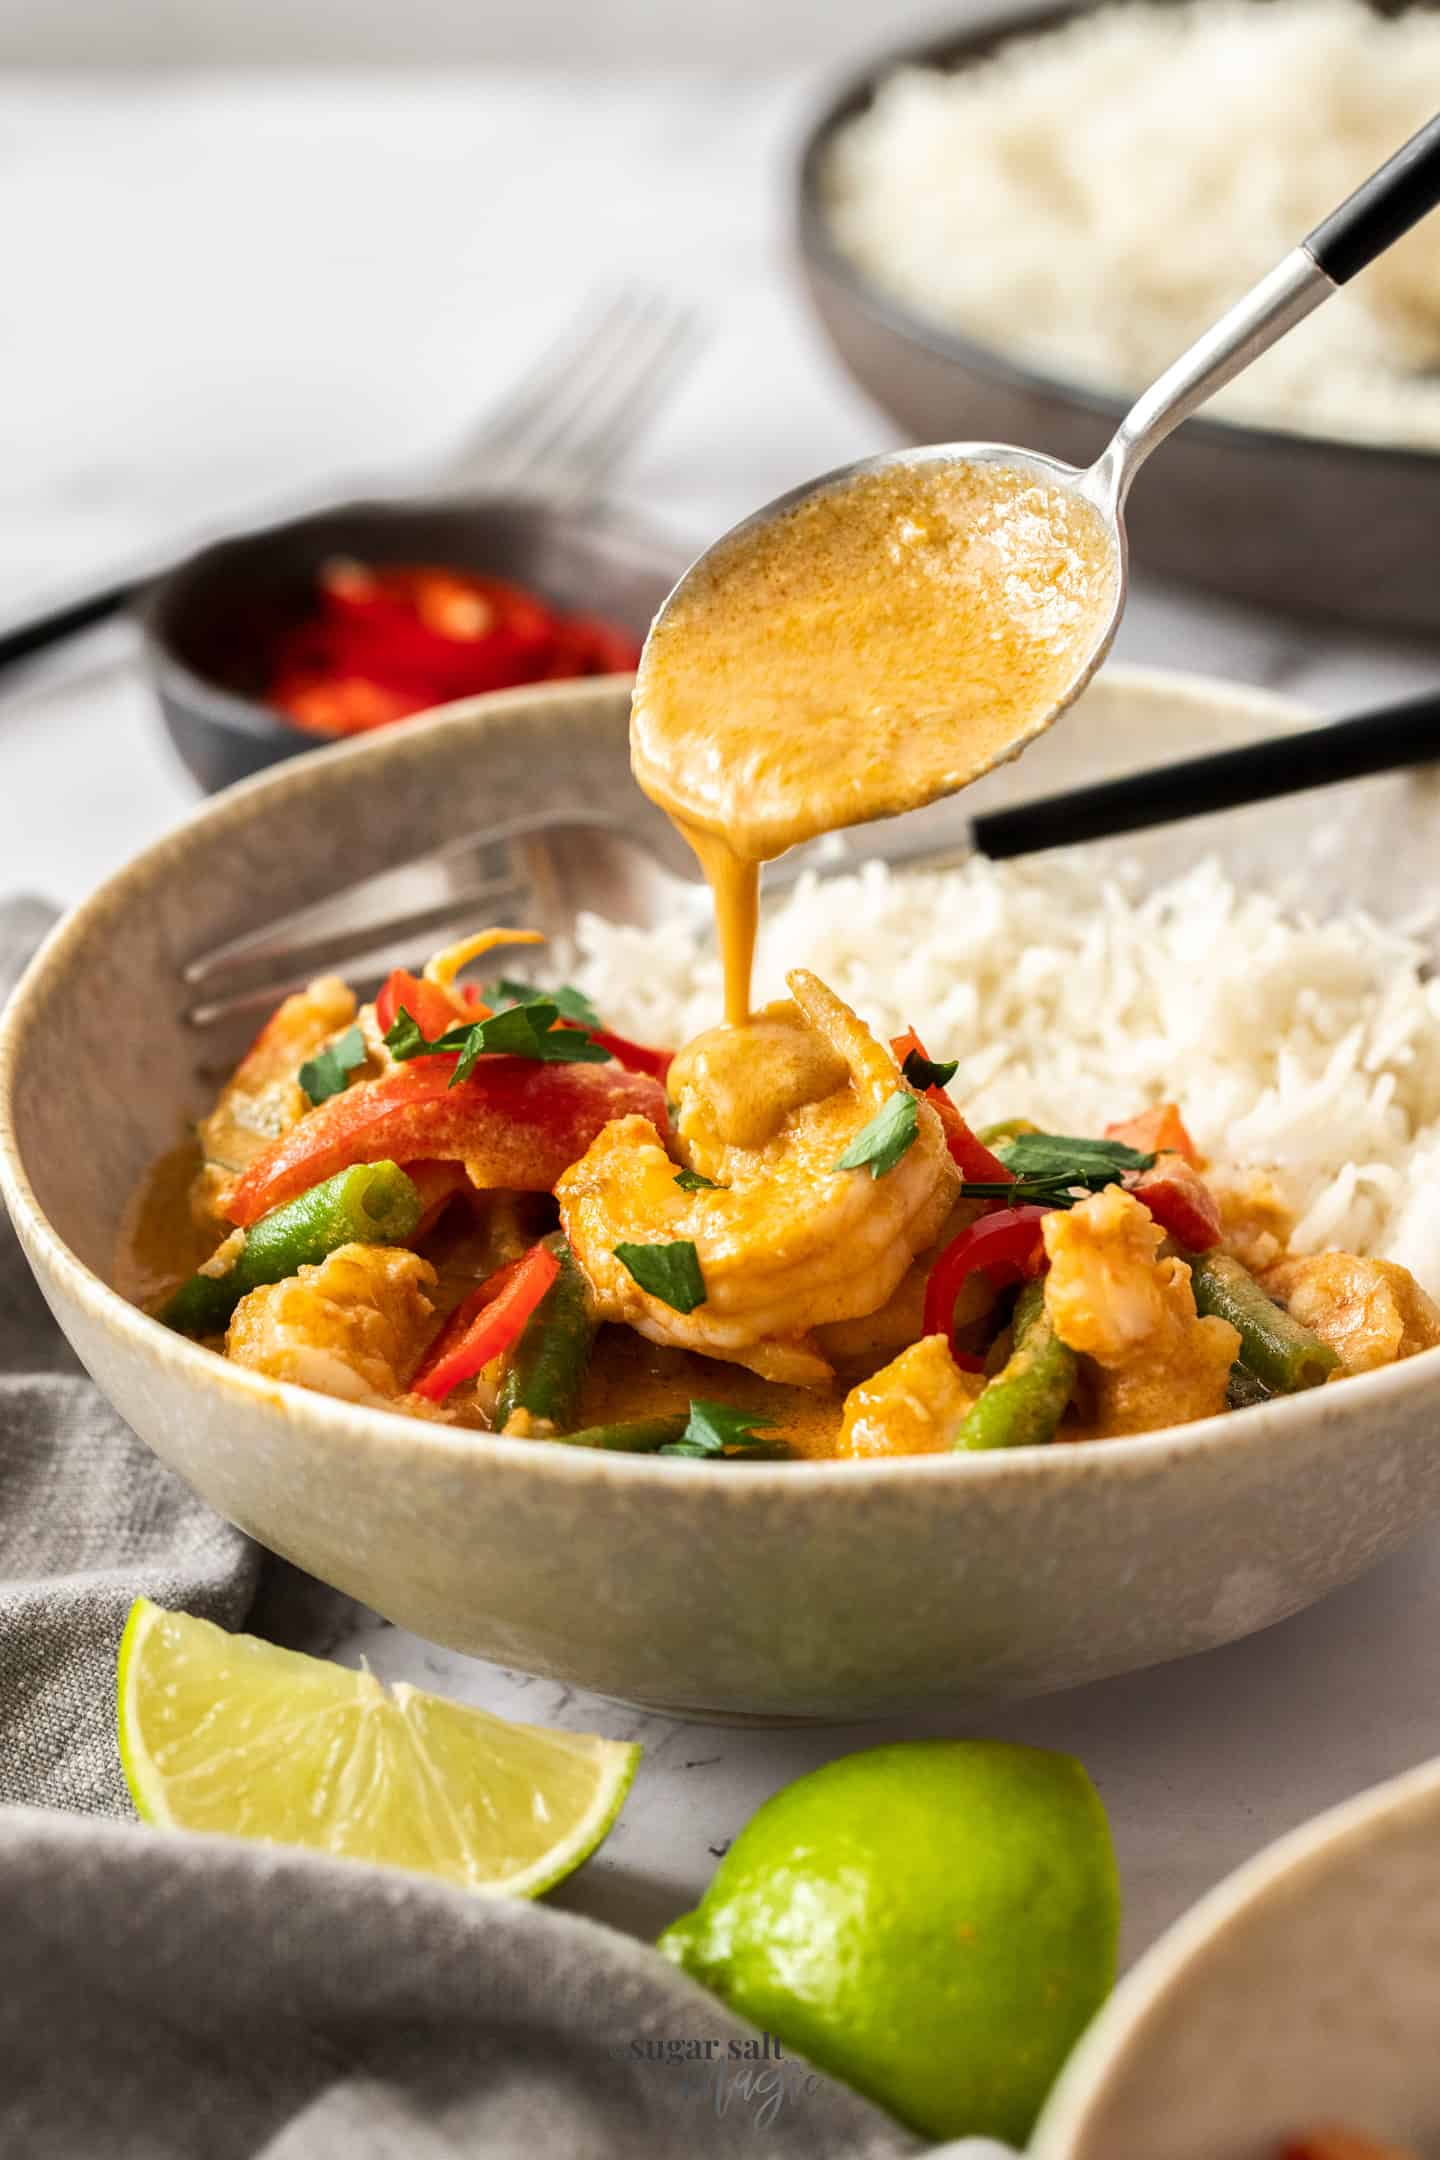 Sauce being poured over prawns in a bowl with rice.